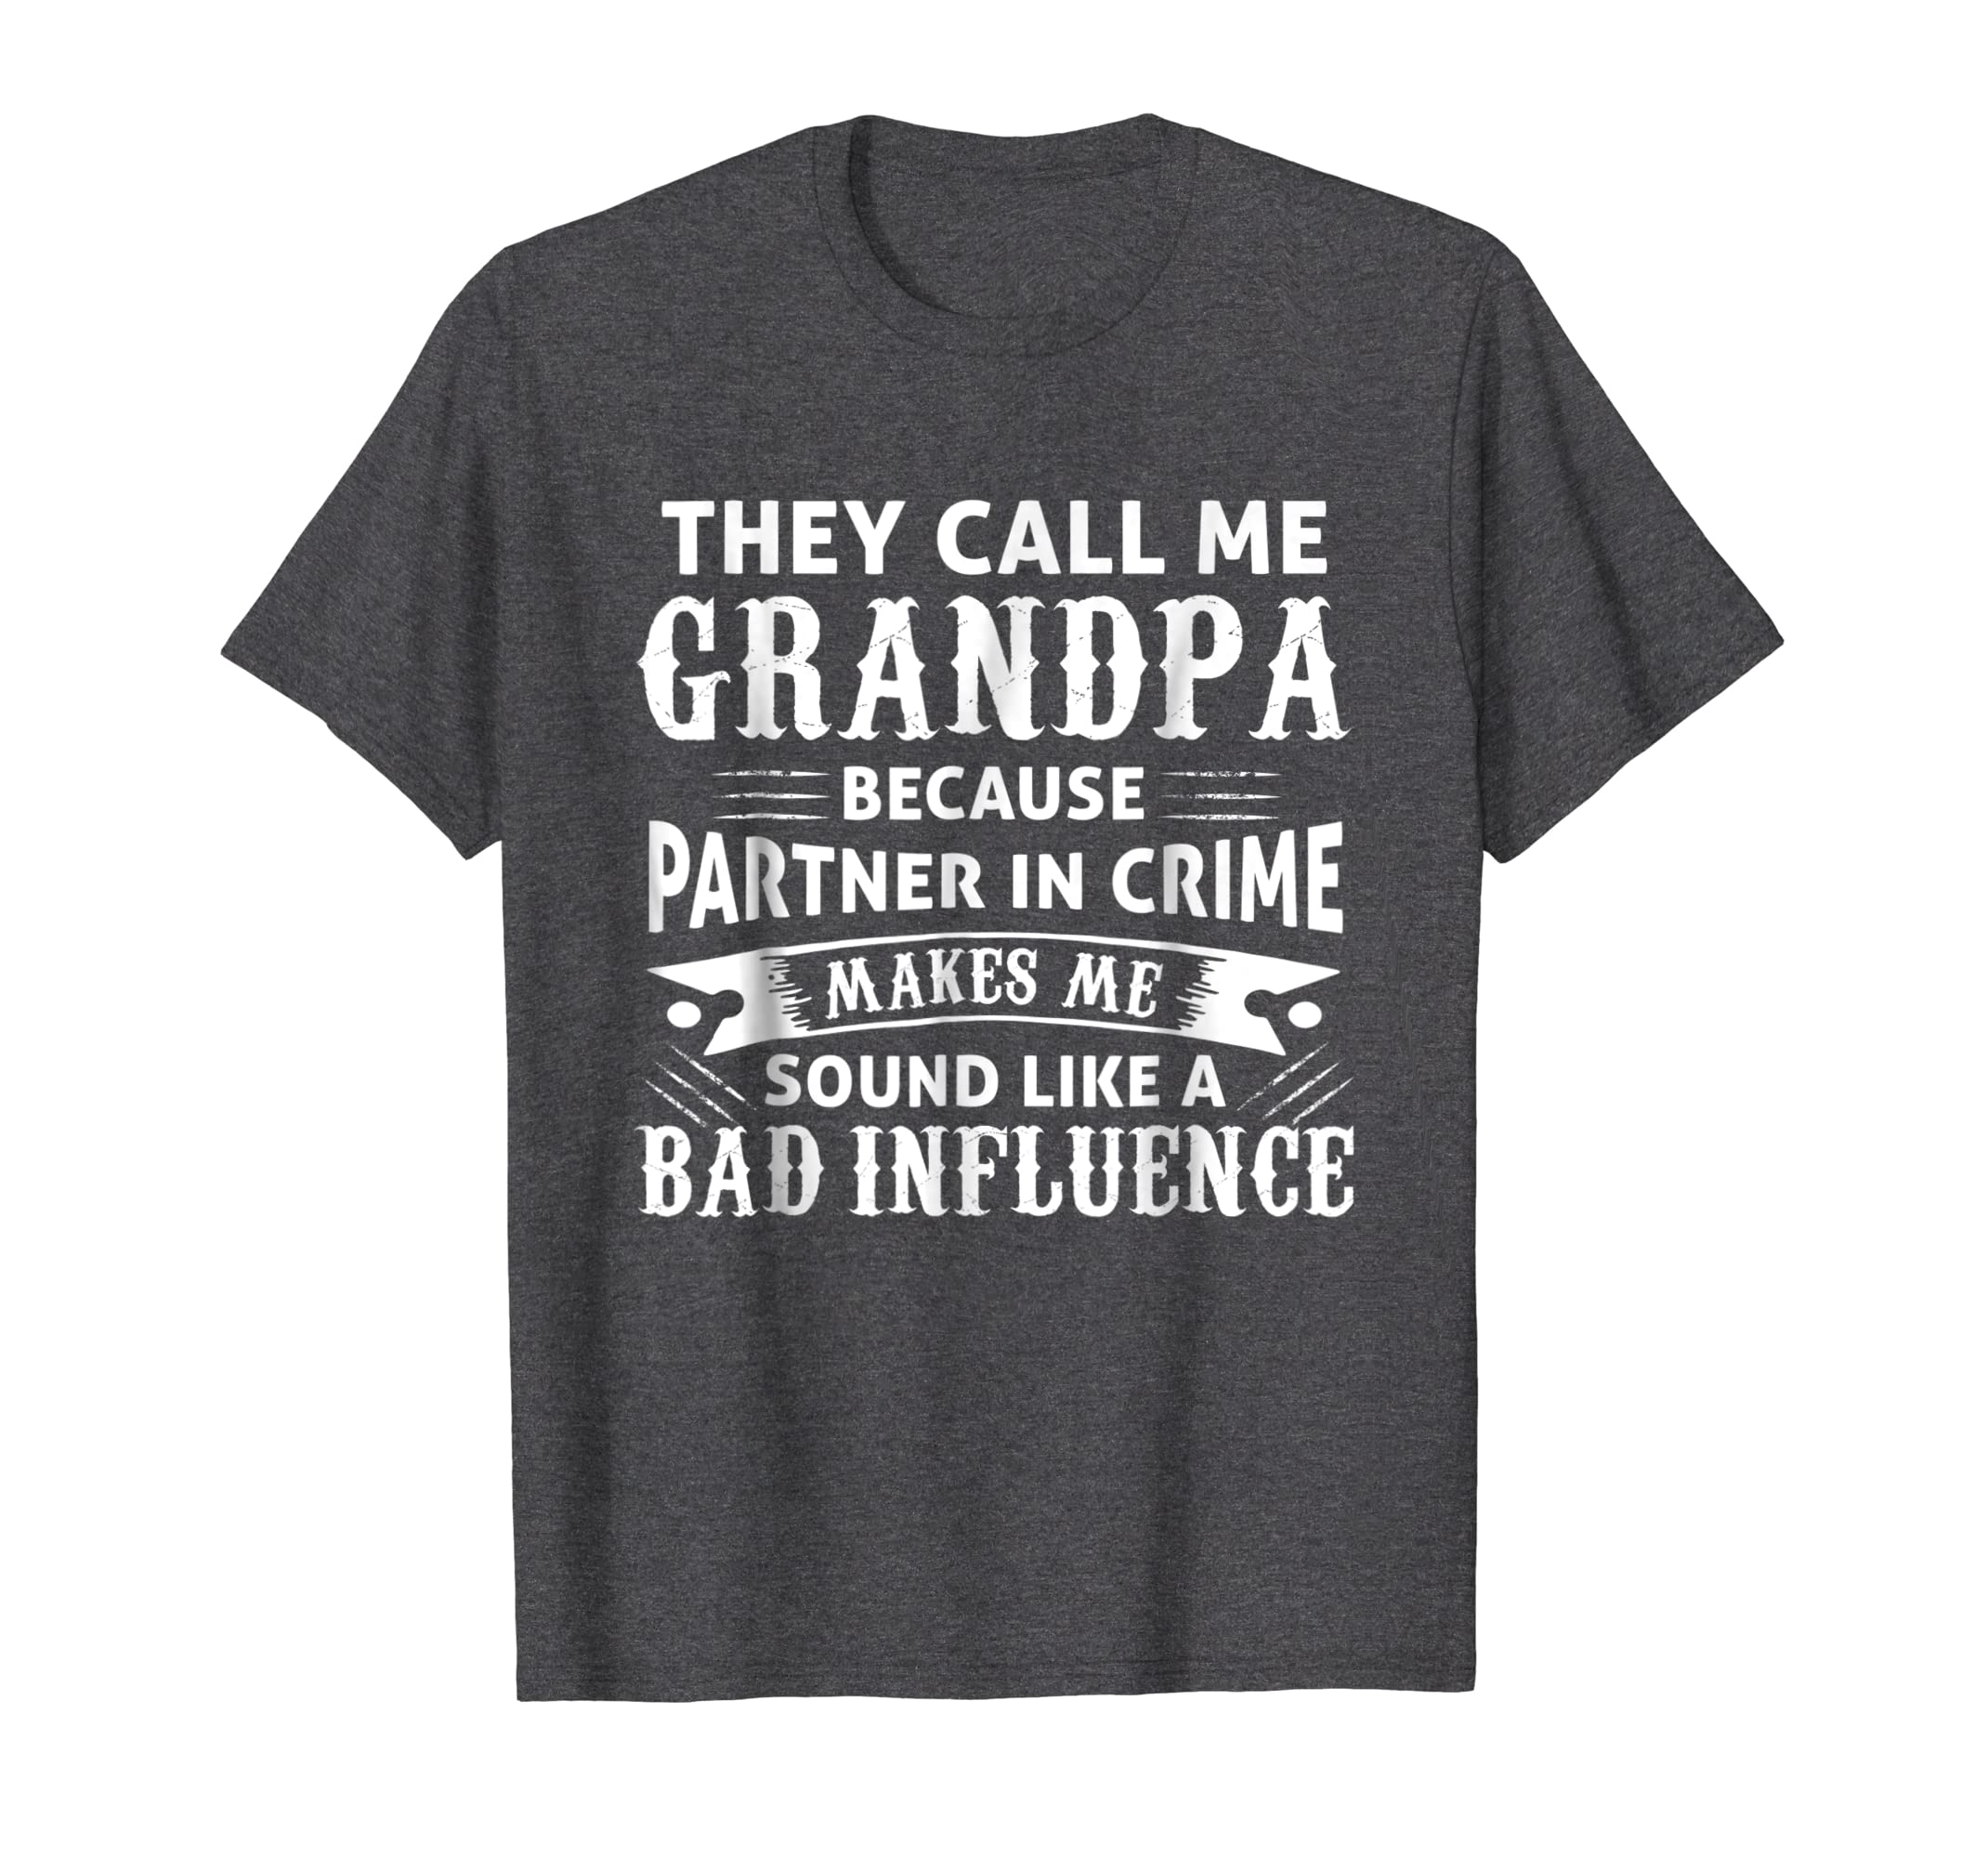 9ffe7a22 Amazon.com: Funny Grandpa Grandfather Shirt: Clothing